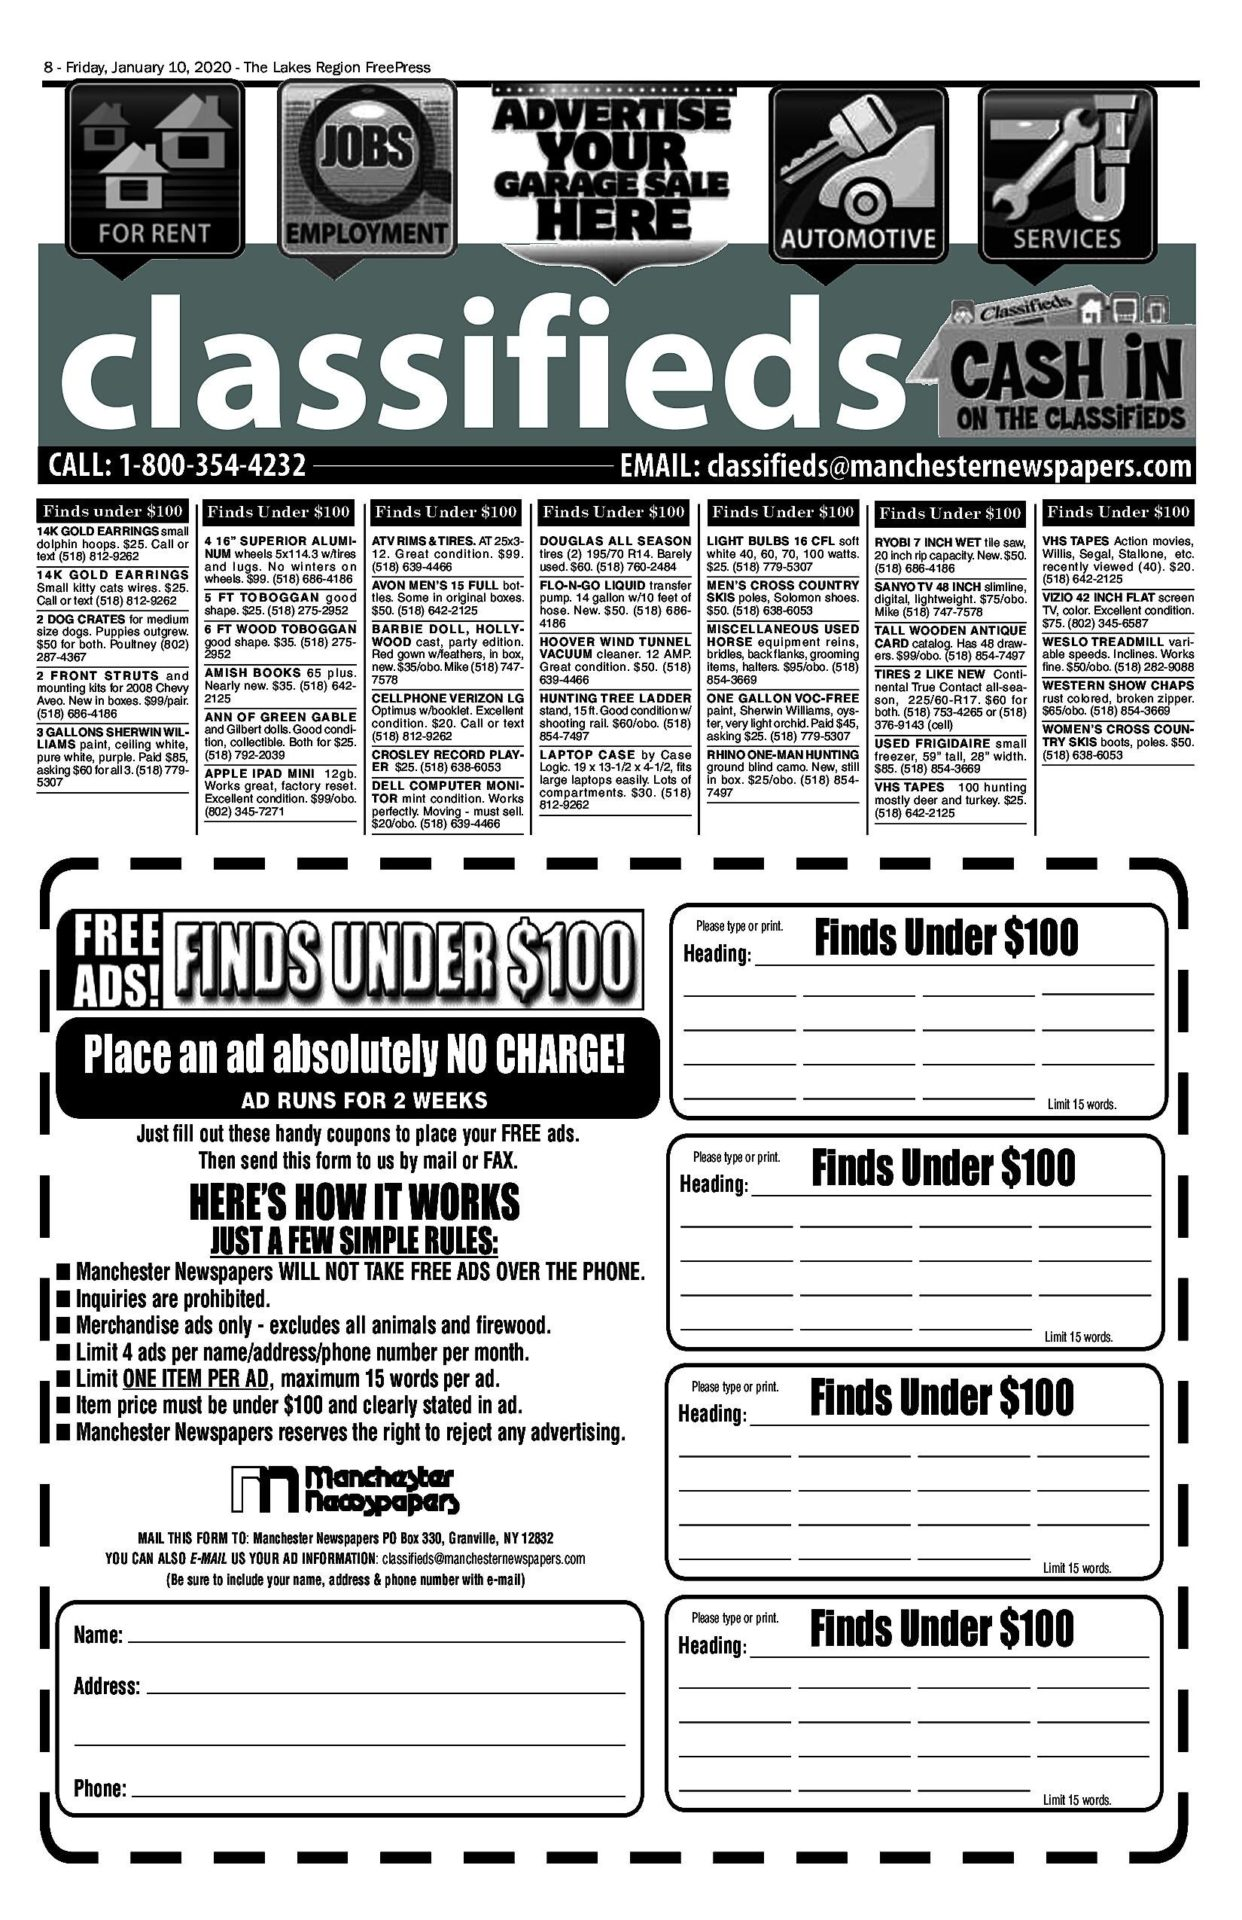 Lakes Classifieds – 01/10/20